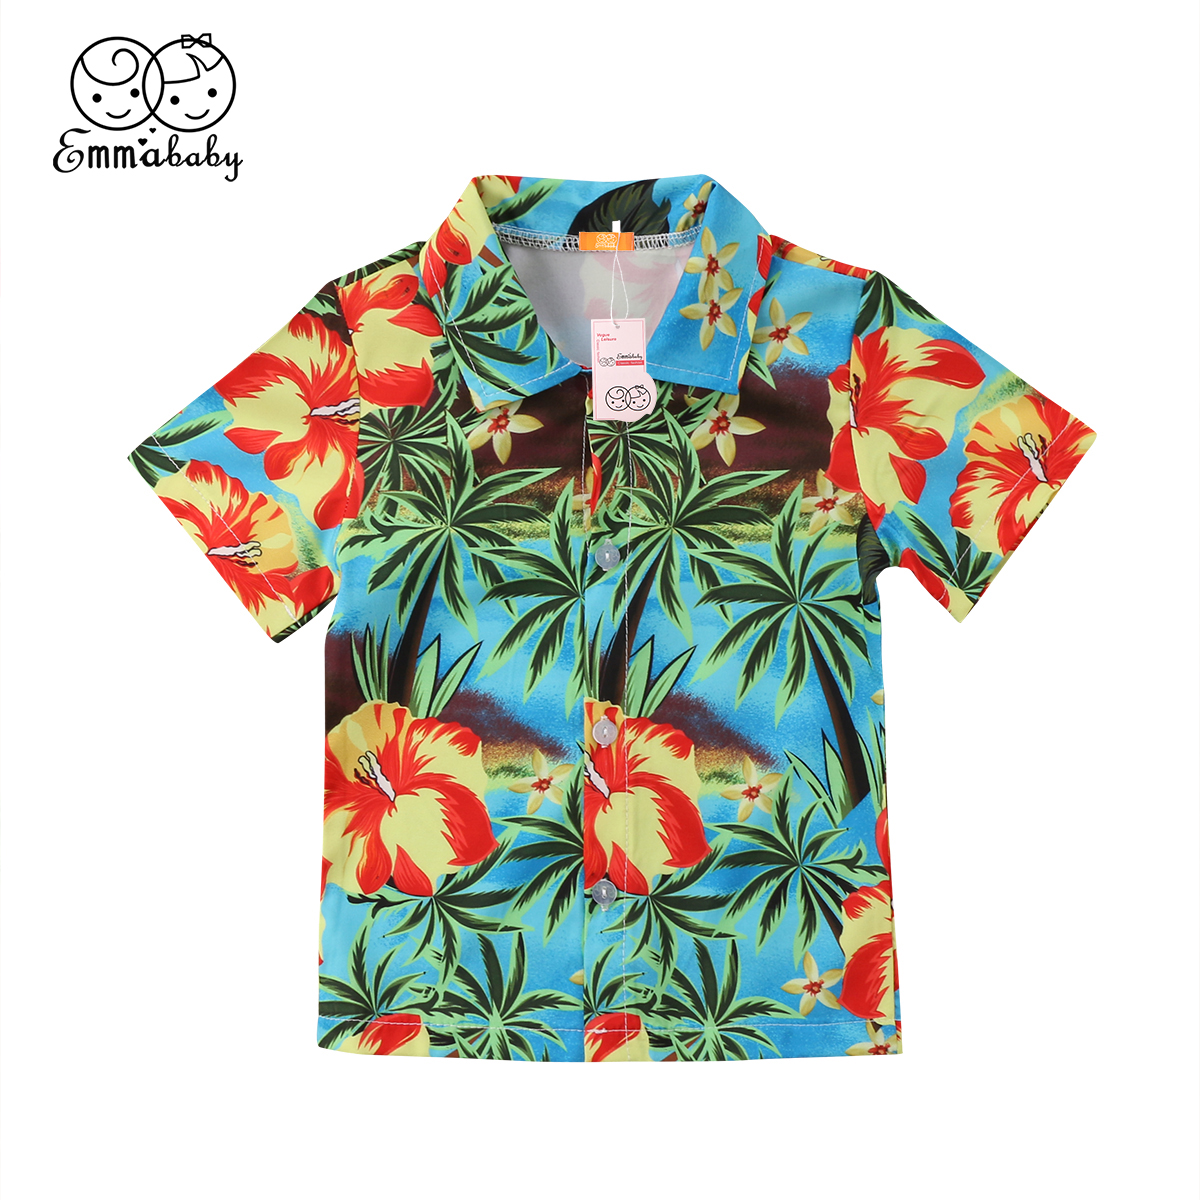 Emmababy Tops Blouse Short-Sleeve T-Shirt Summer Casual Coconut-Tree-Print Newbron